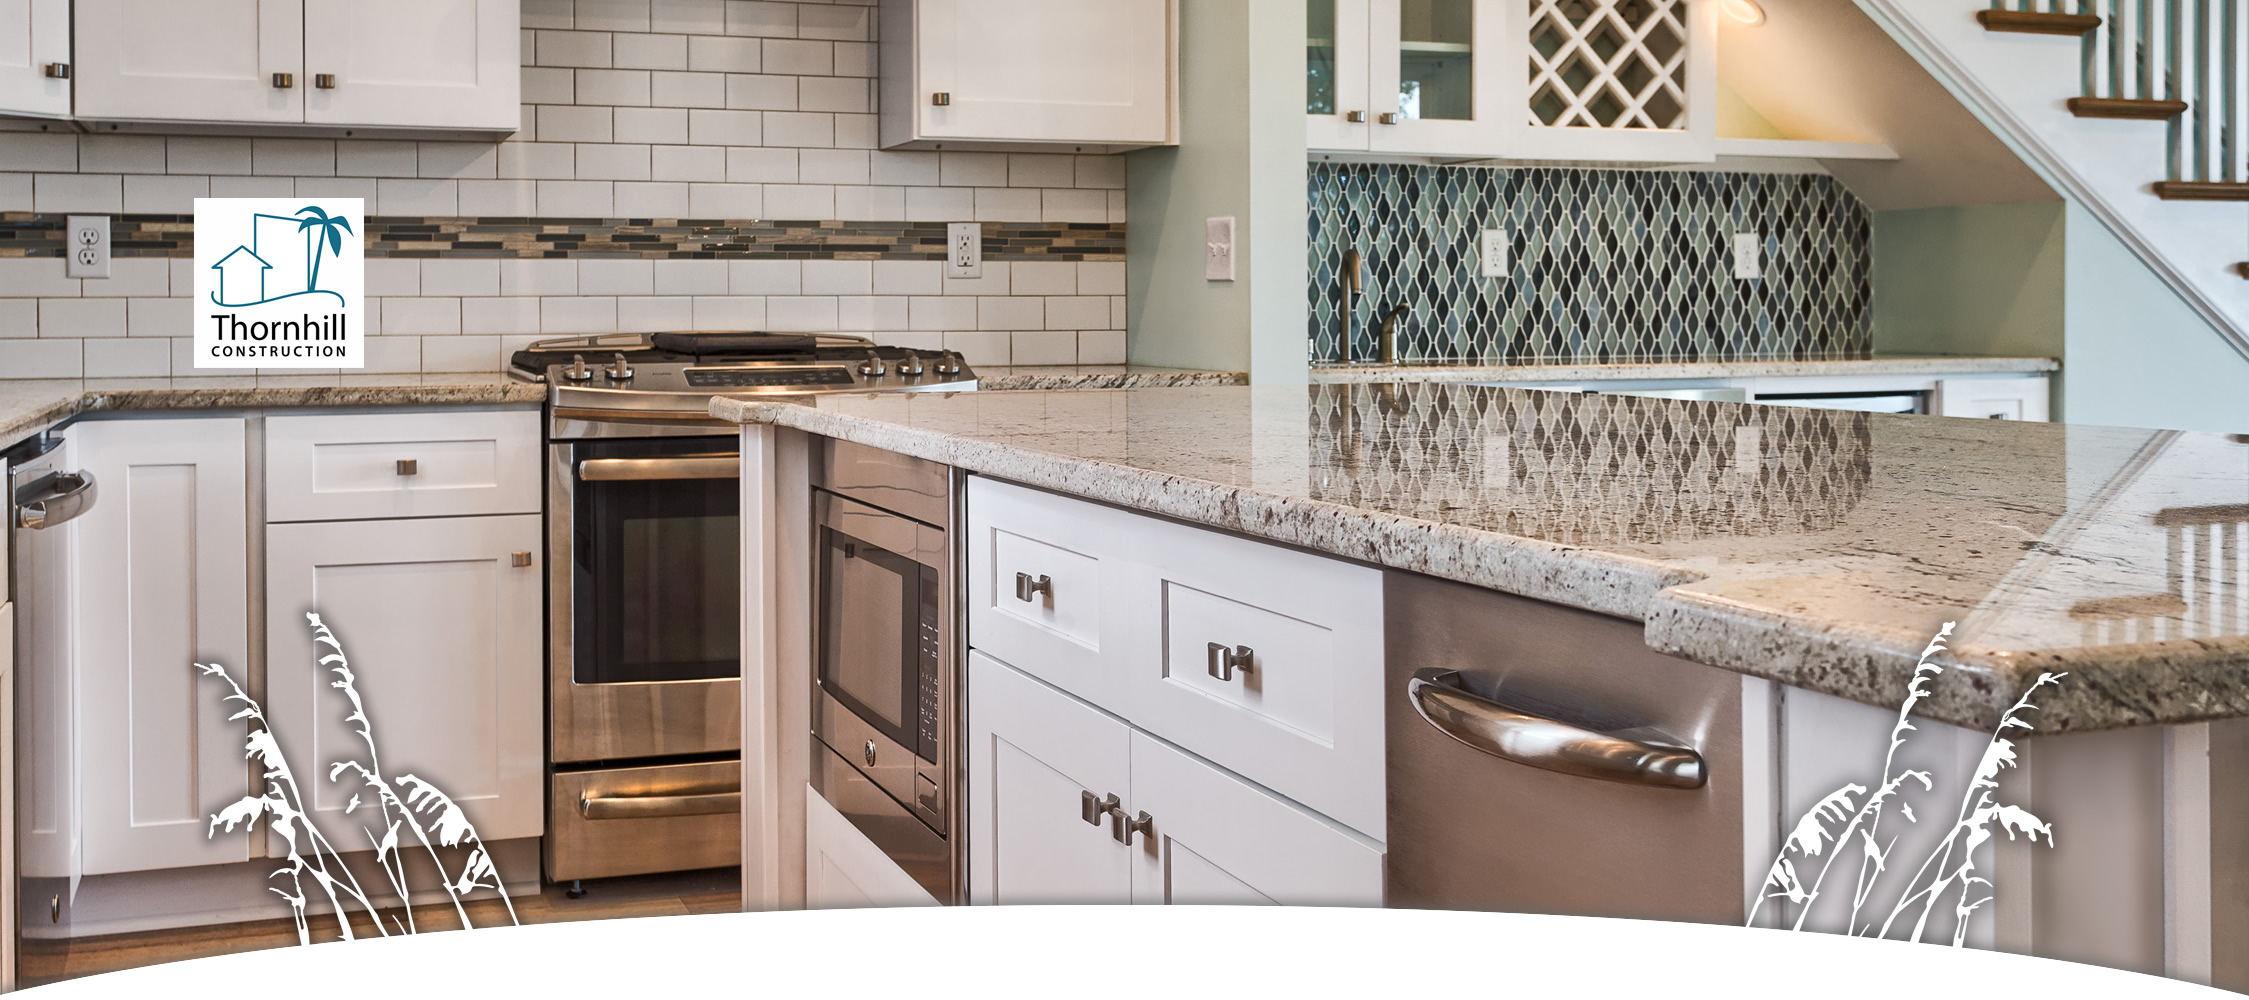 thornhill-new-site-image4